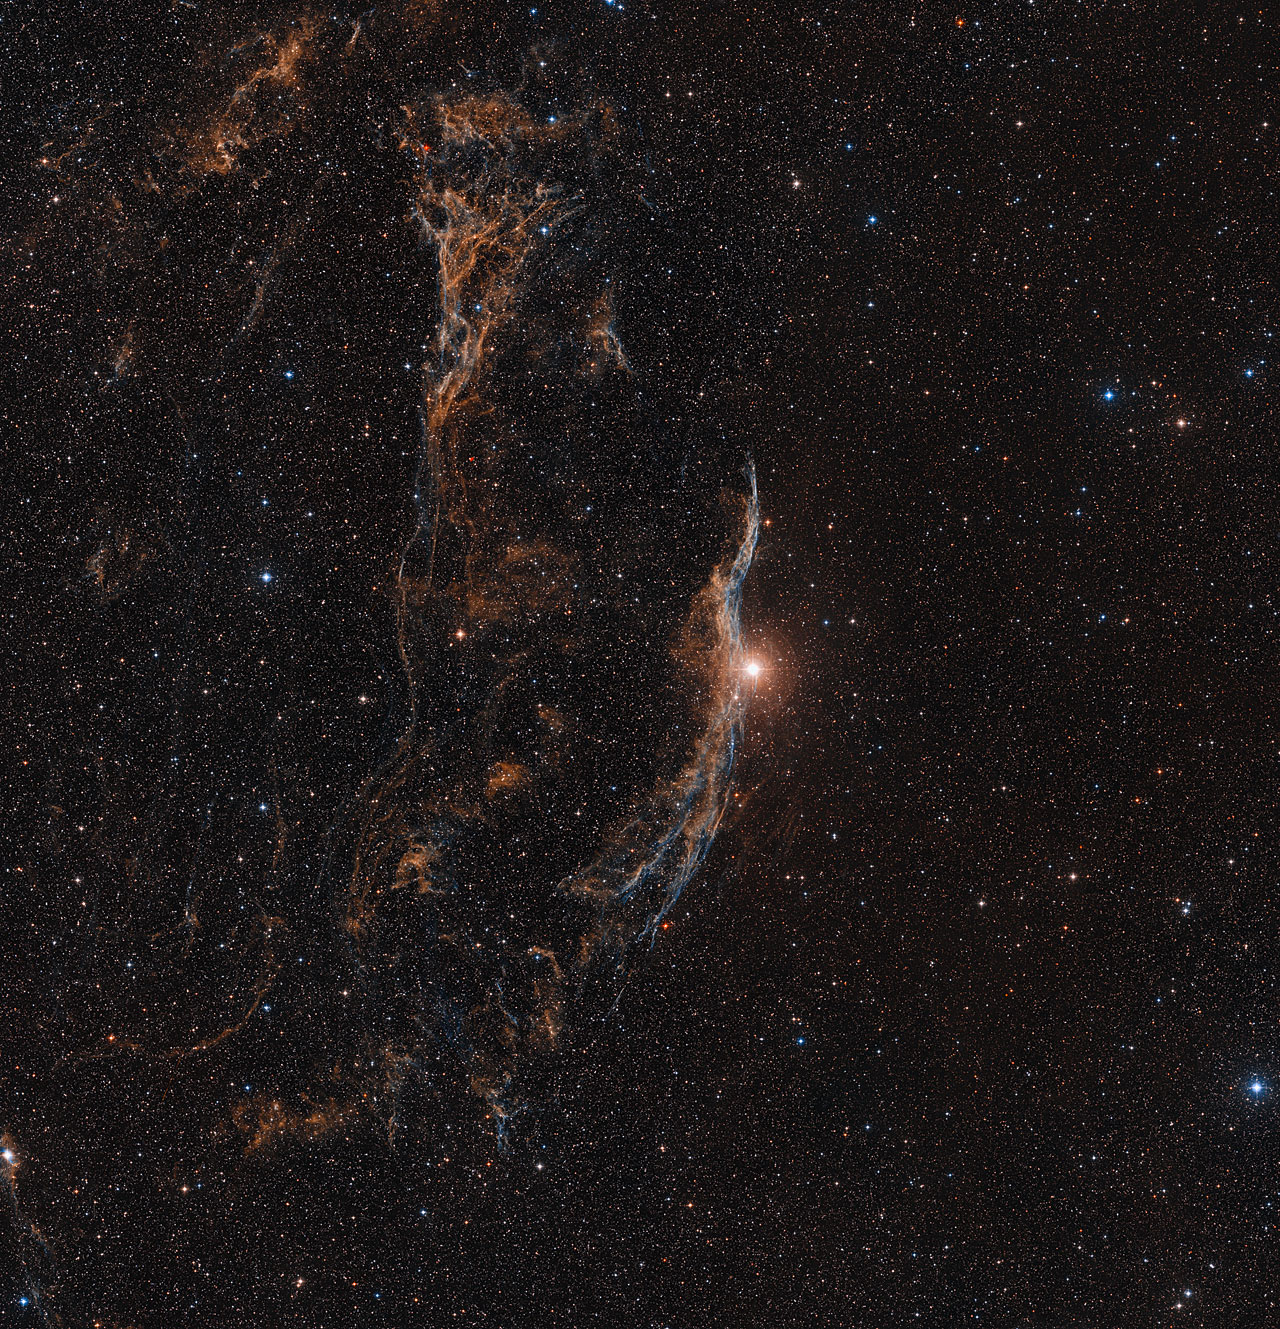 The Veil Nebula (ground-based view)